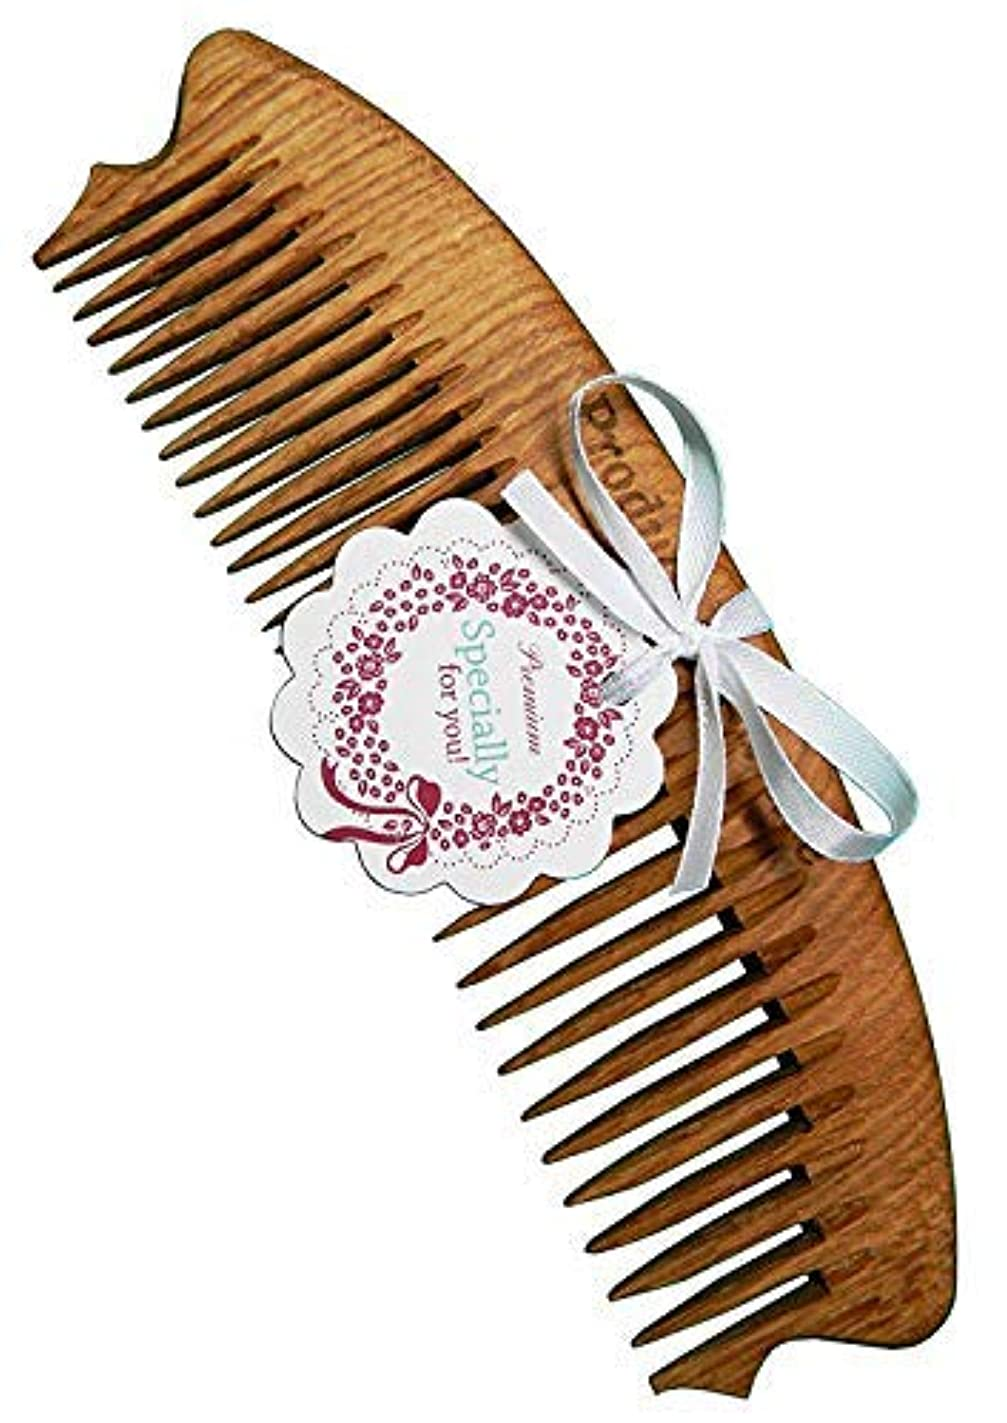 友だち水分専門Wooden comb It is a special comb made from natural oak wood 100% HANDCRAFTED Premium [並行輸入品]